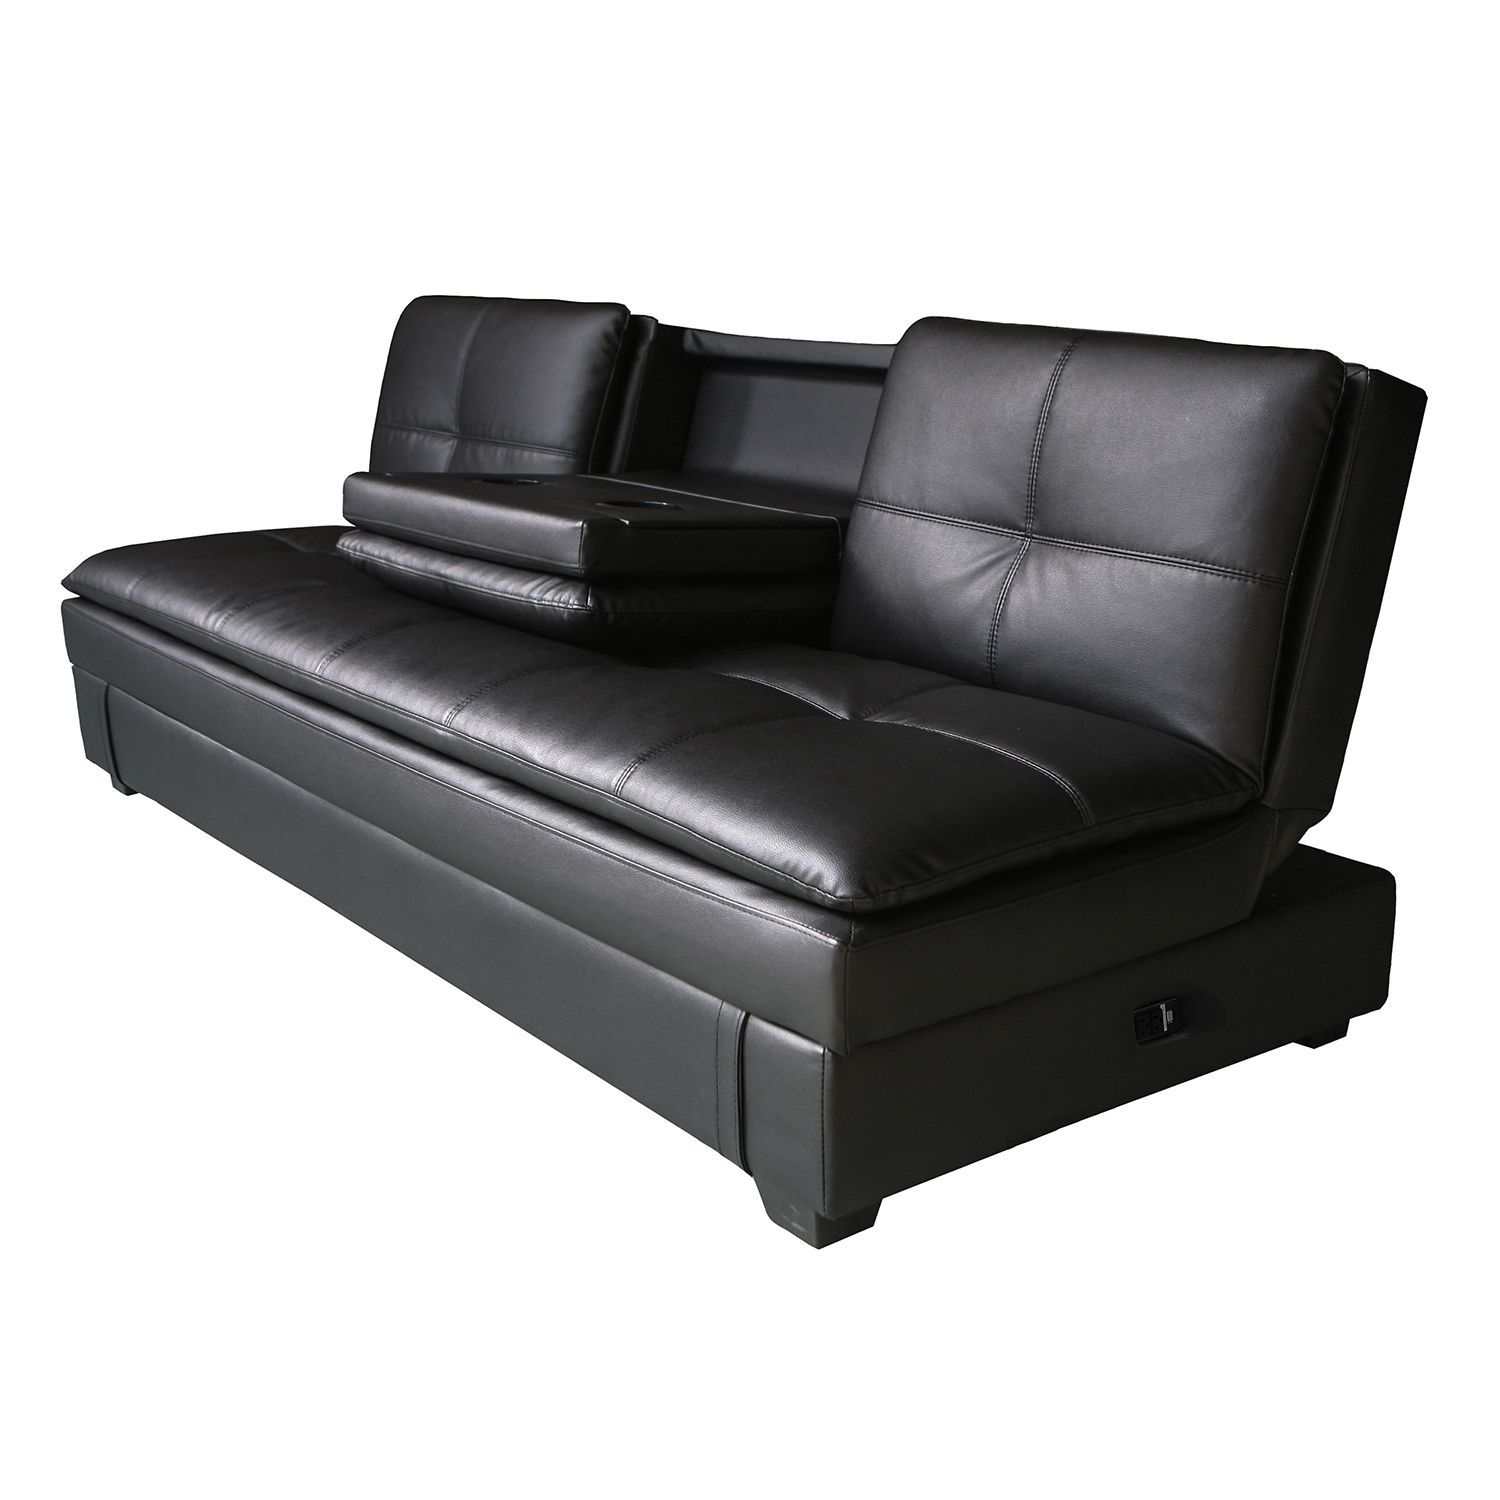 Serta Axis Convertible Storage Sofa With Usb Ports Furniture